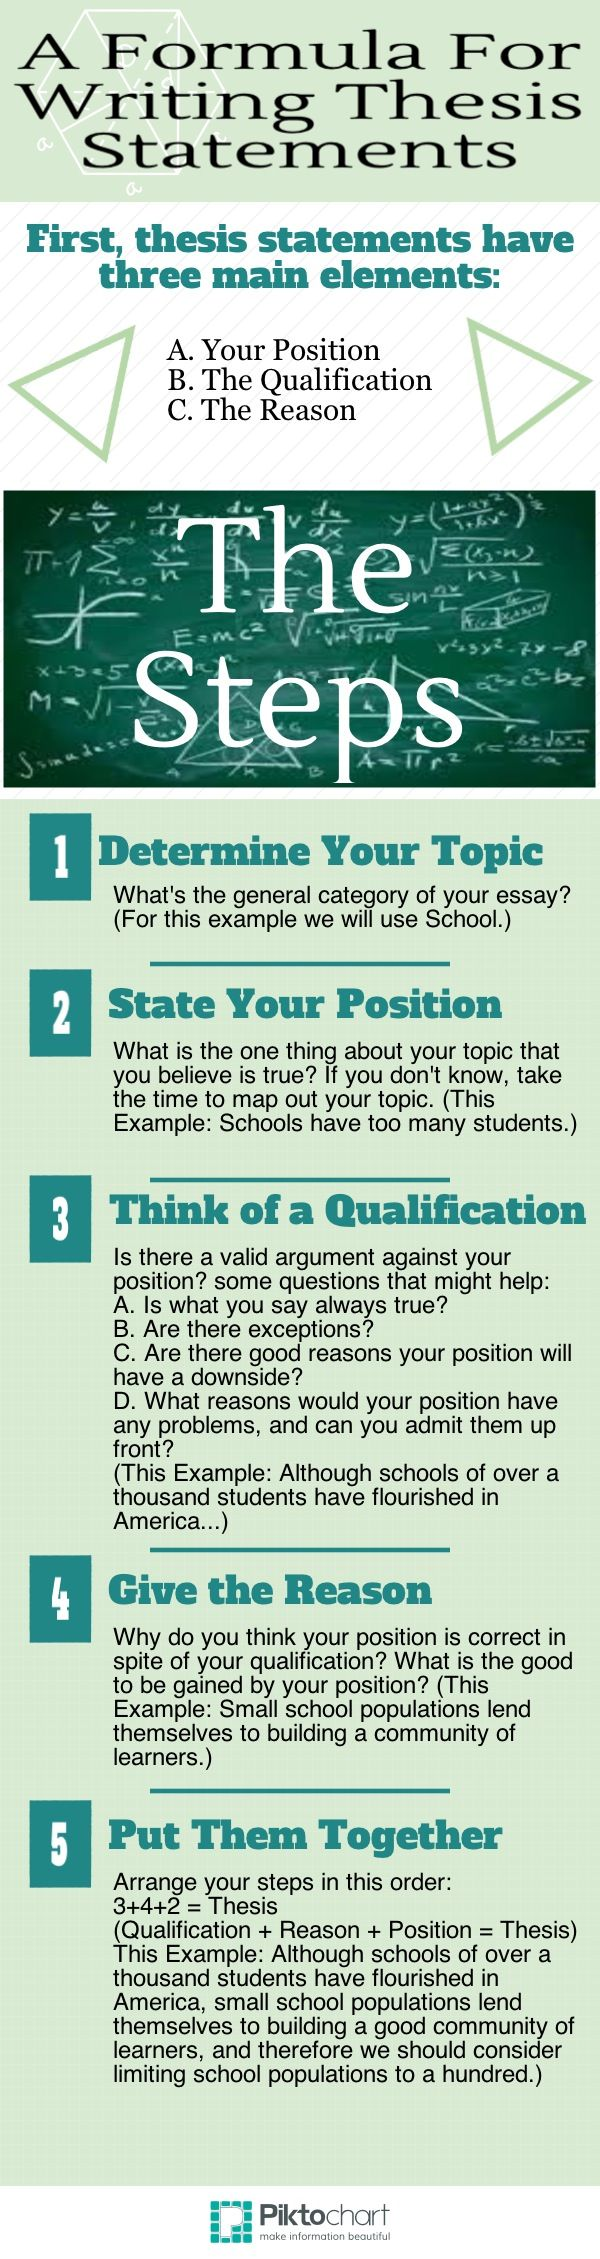 thesis statements piktochart infographic education thesis statements piktochart infographic